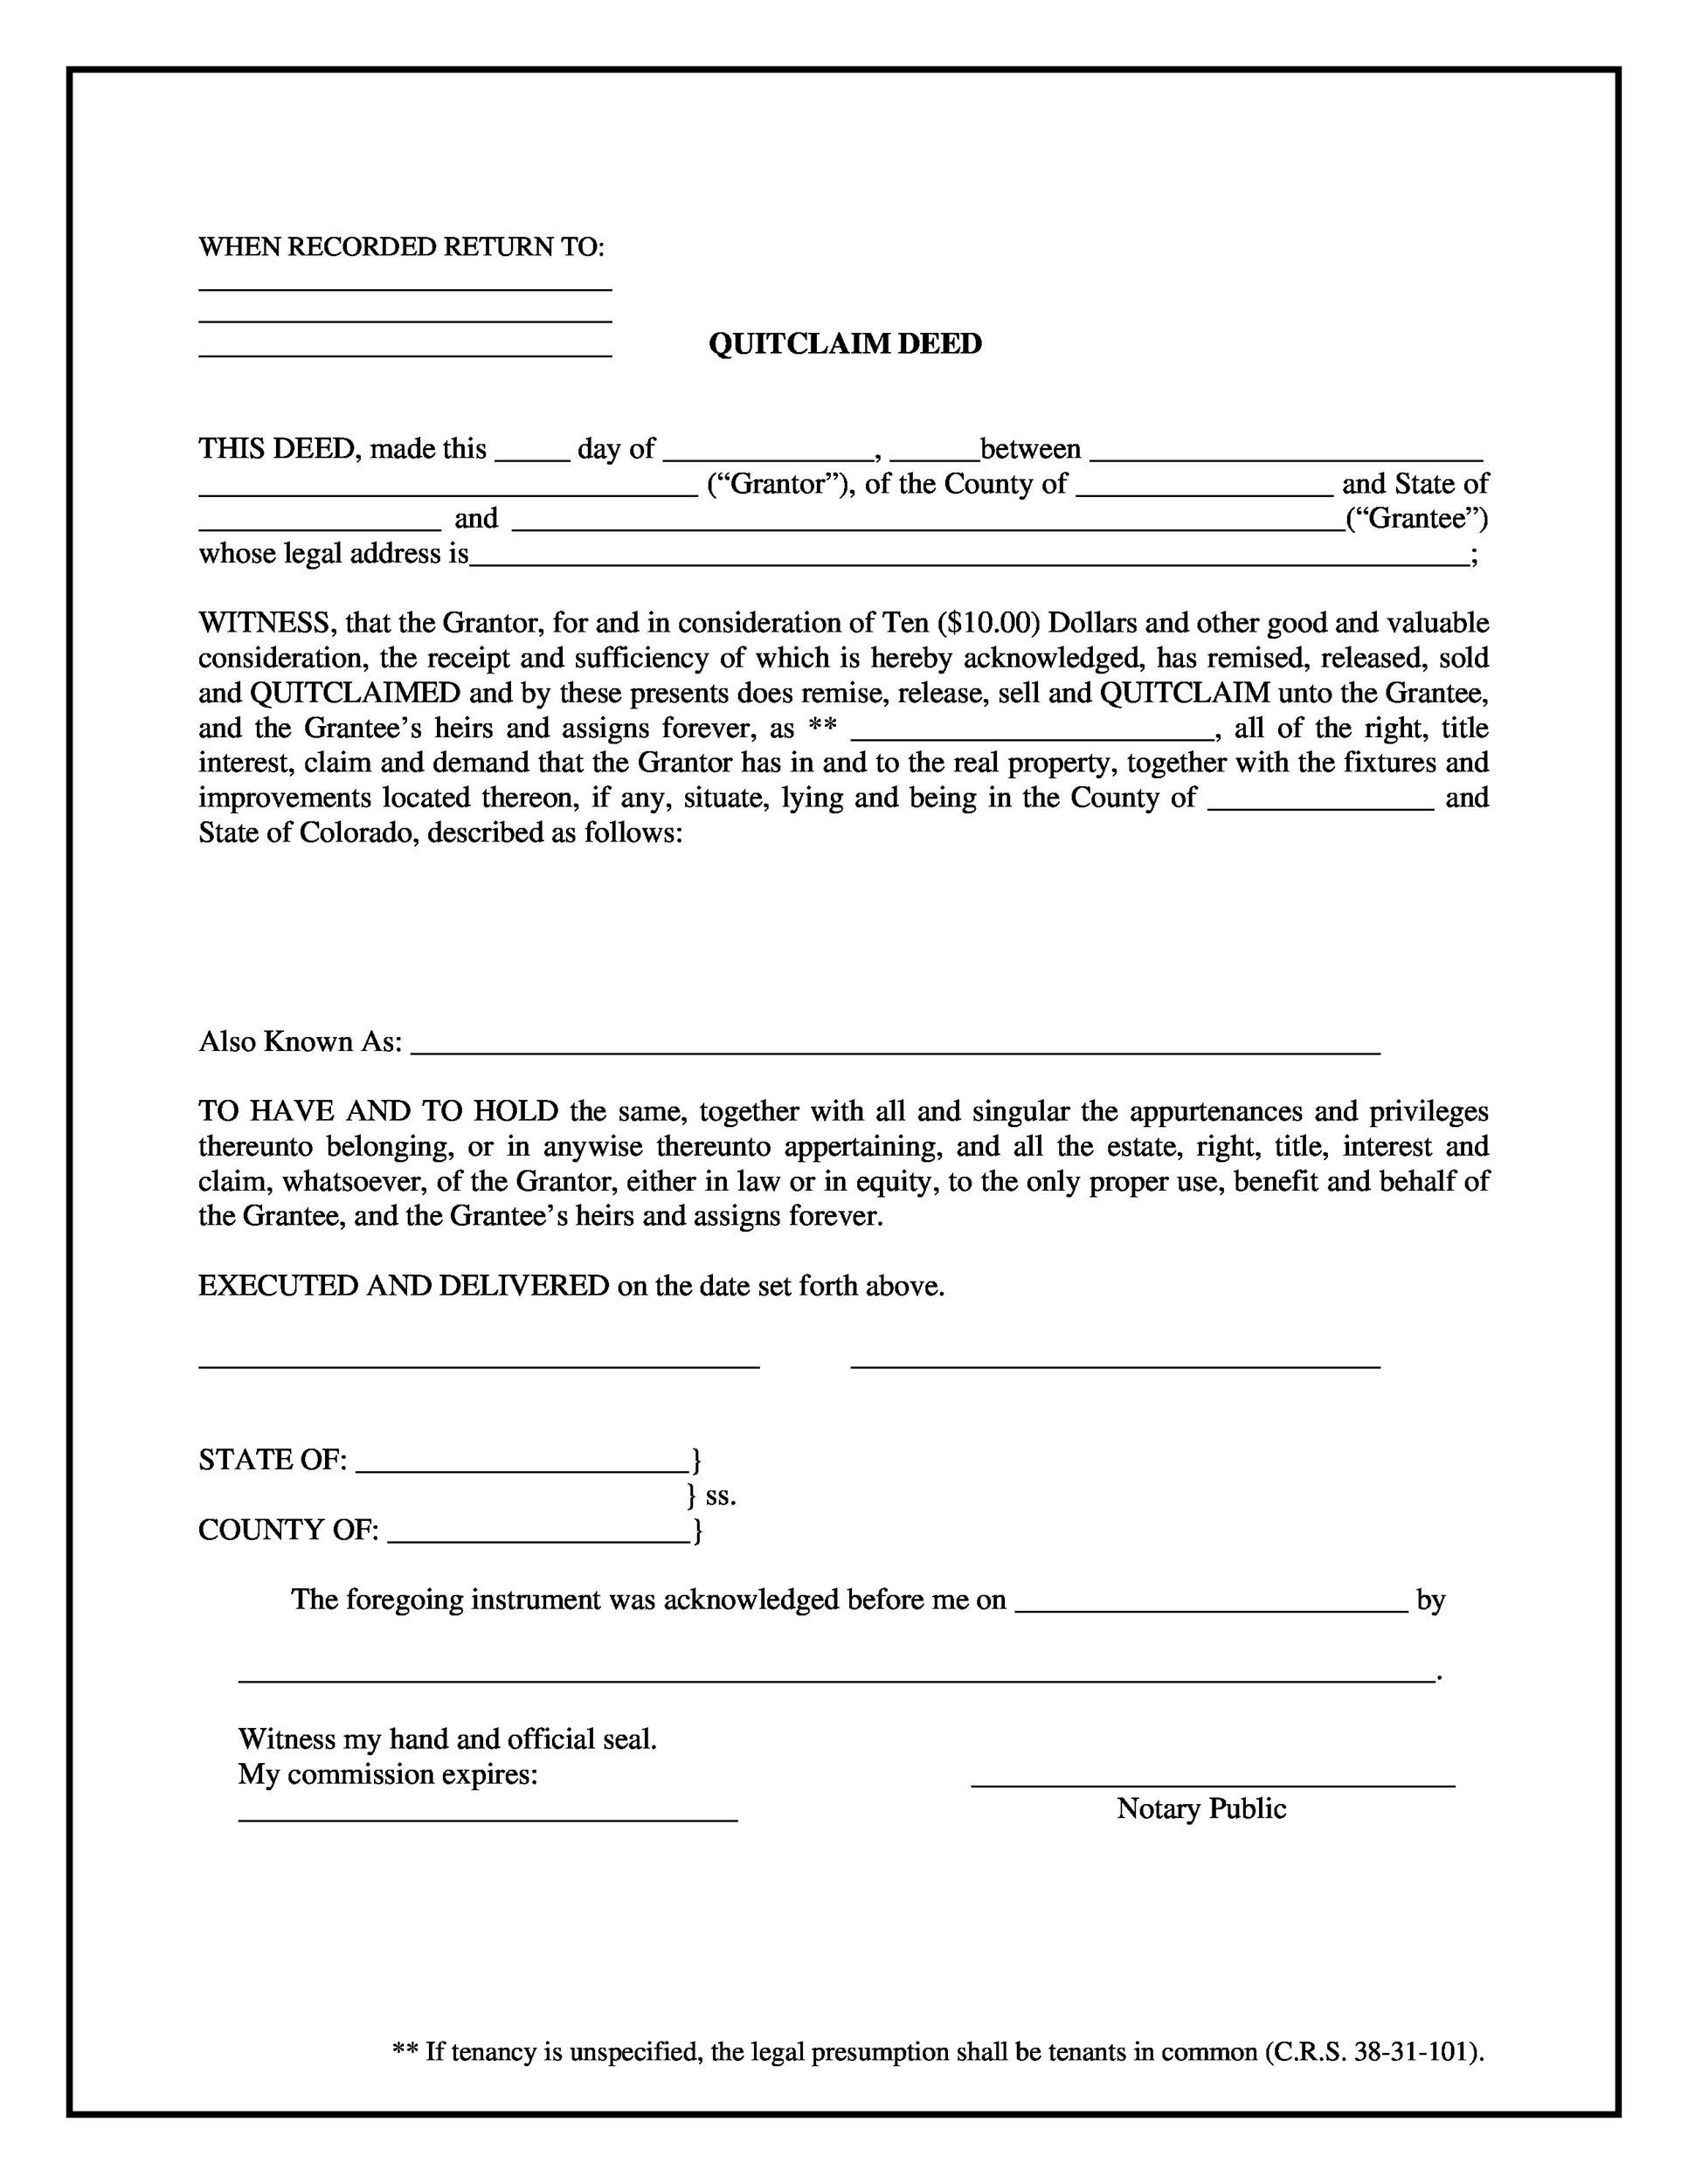 46 free quit claim deed forms templates template lab With quit claim deed template free download